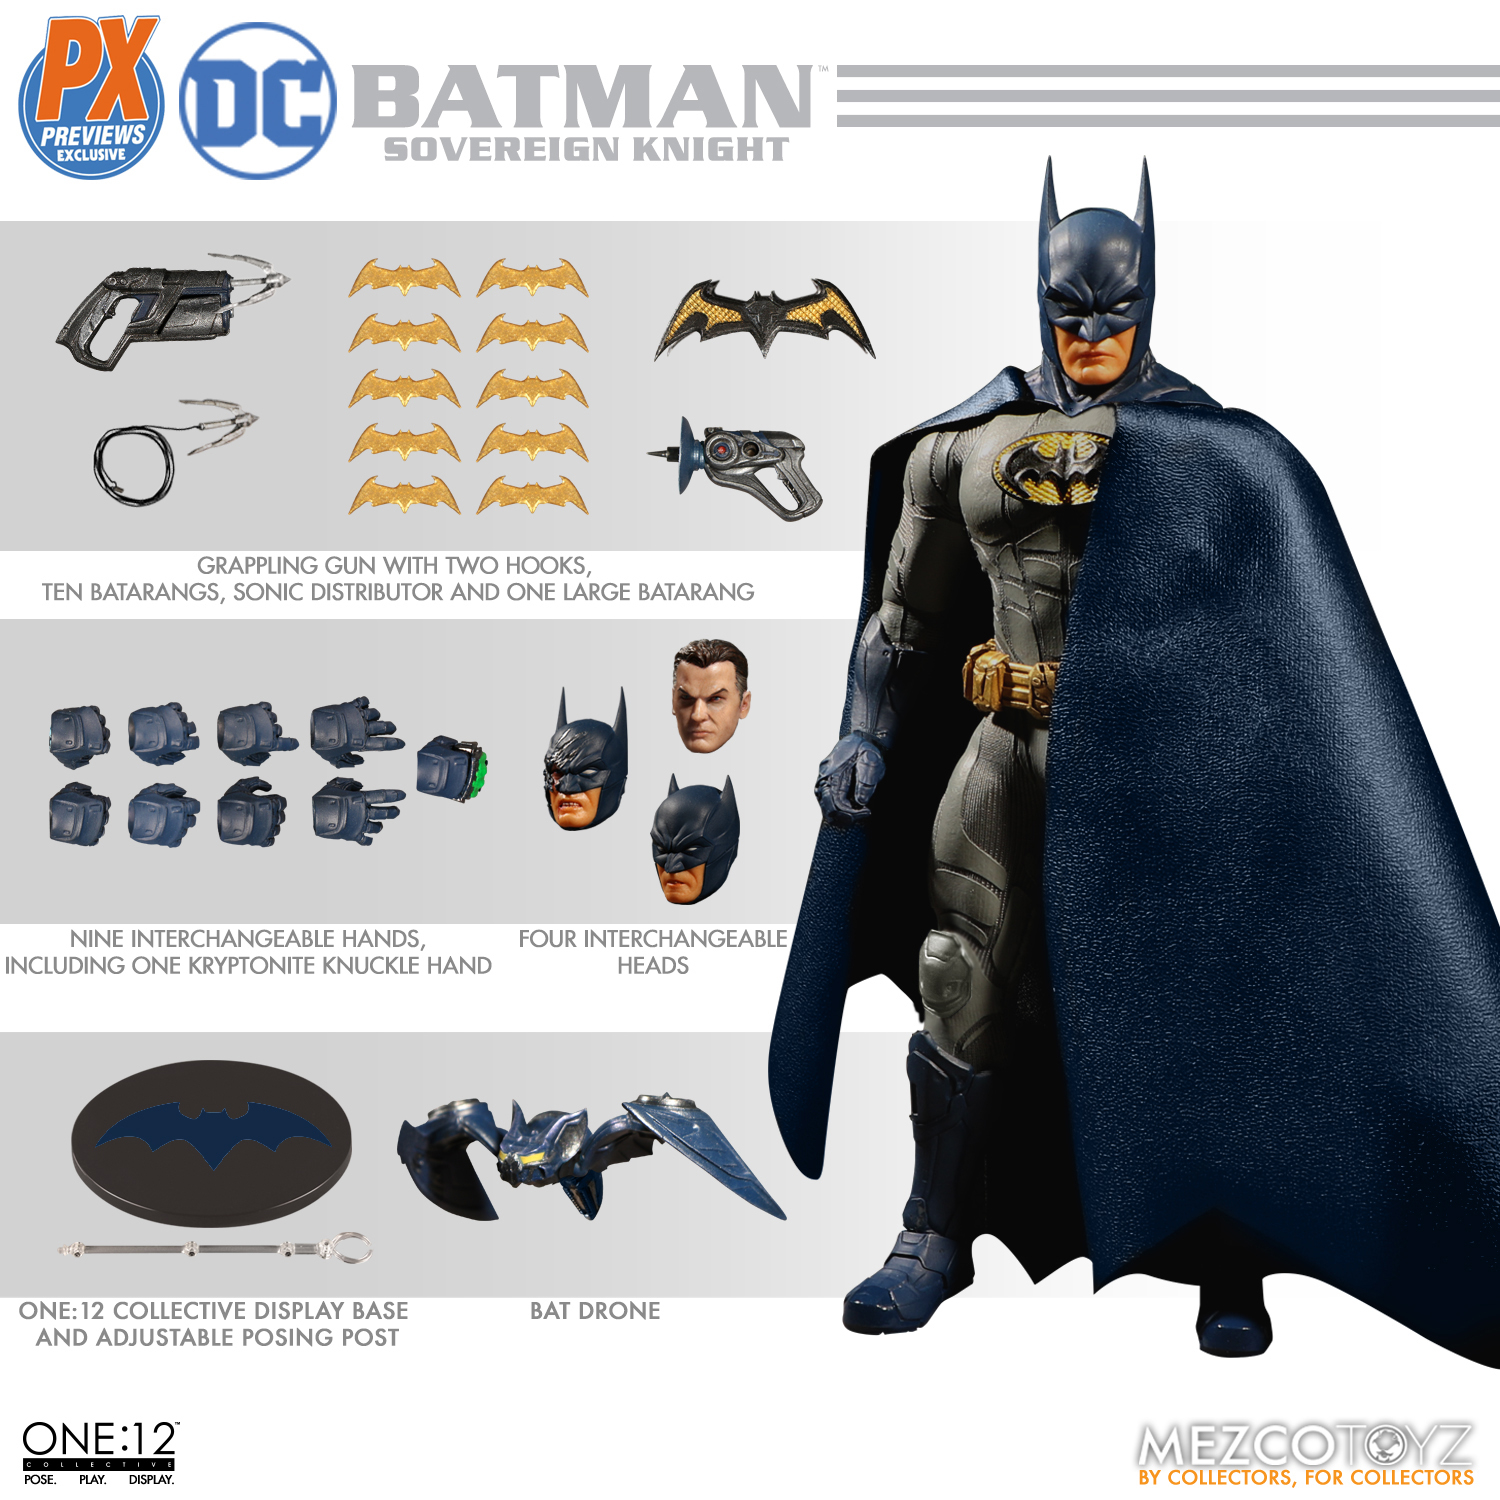 ONE-12 COLLECTIVE DC PX SOVEREIGN KNIGHT BATMAN BLUE AF (NET